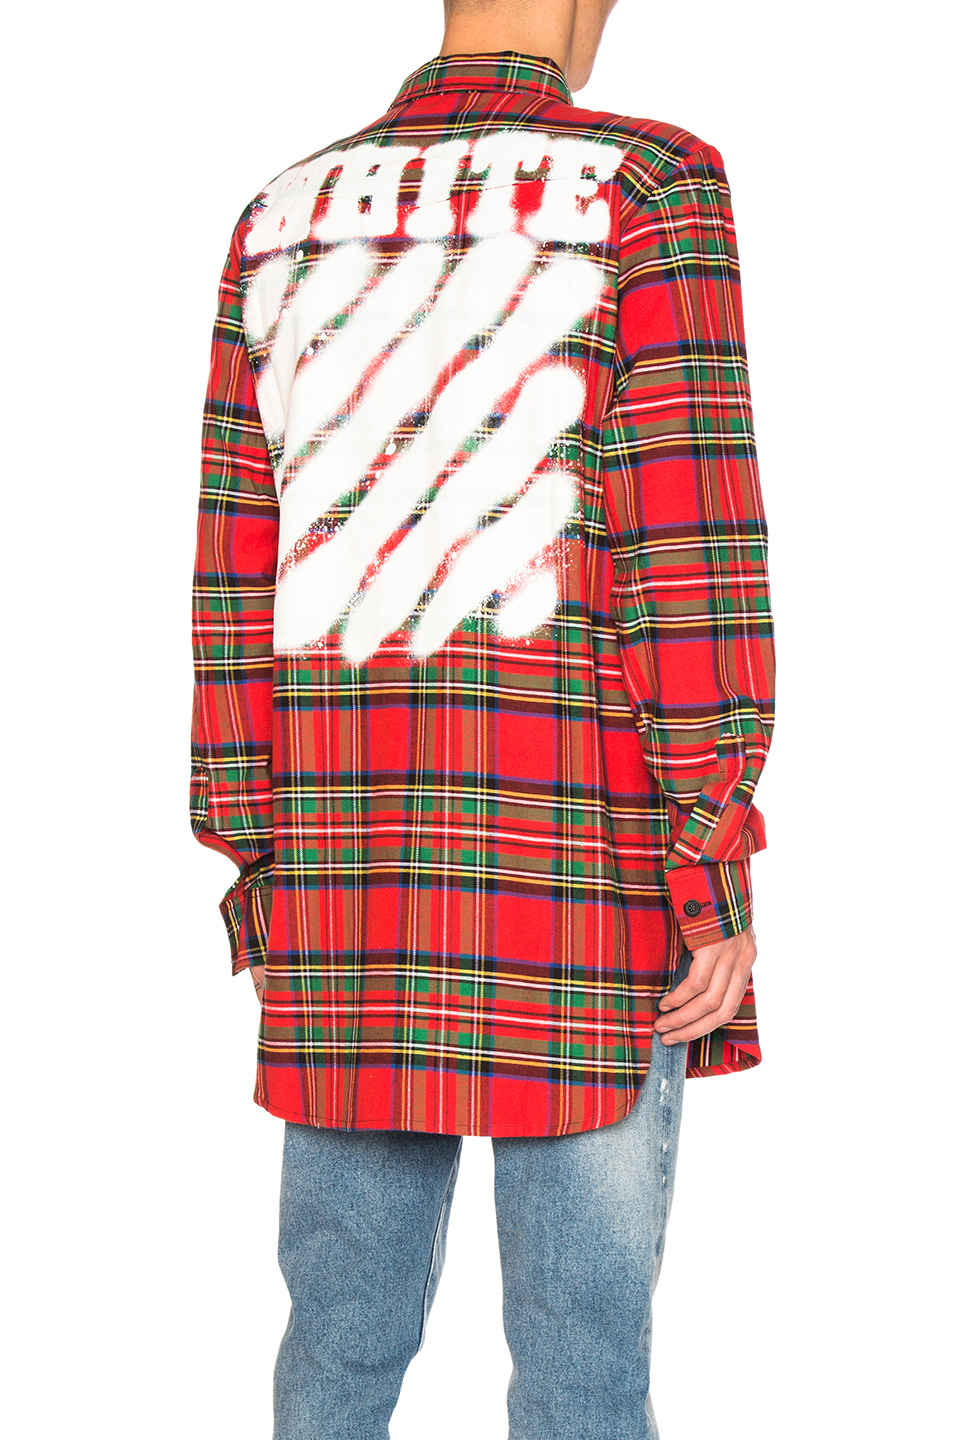 OFF-WHITE Diagonal Spray Check Shirt in Red,Checkered & Plaid